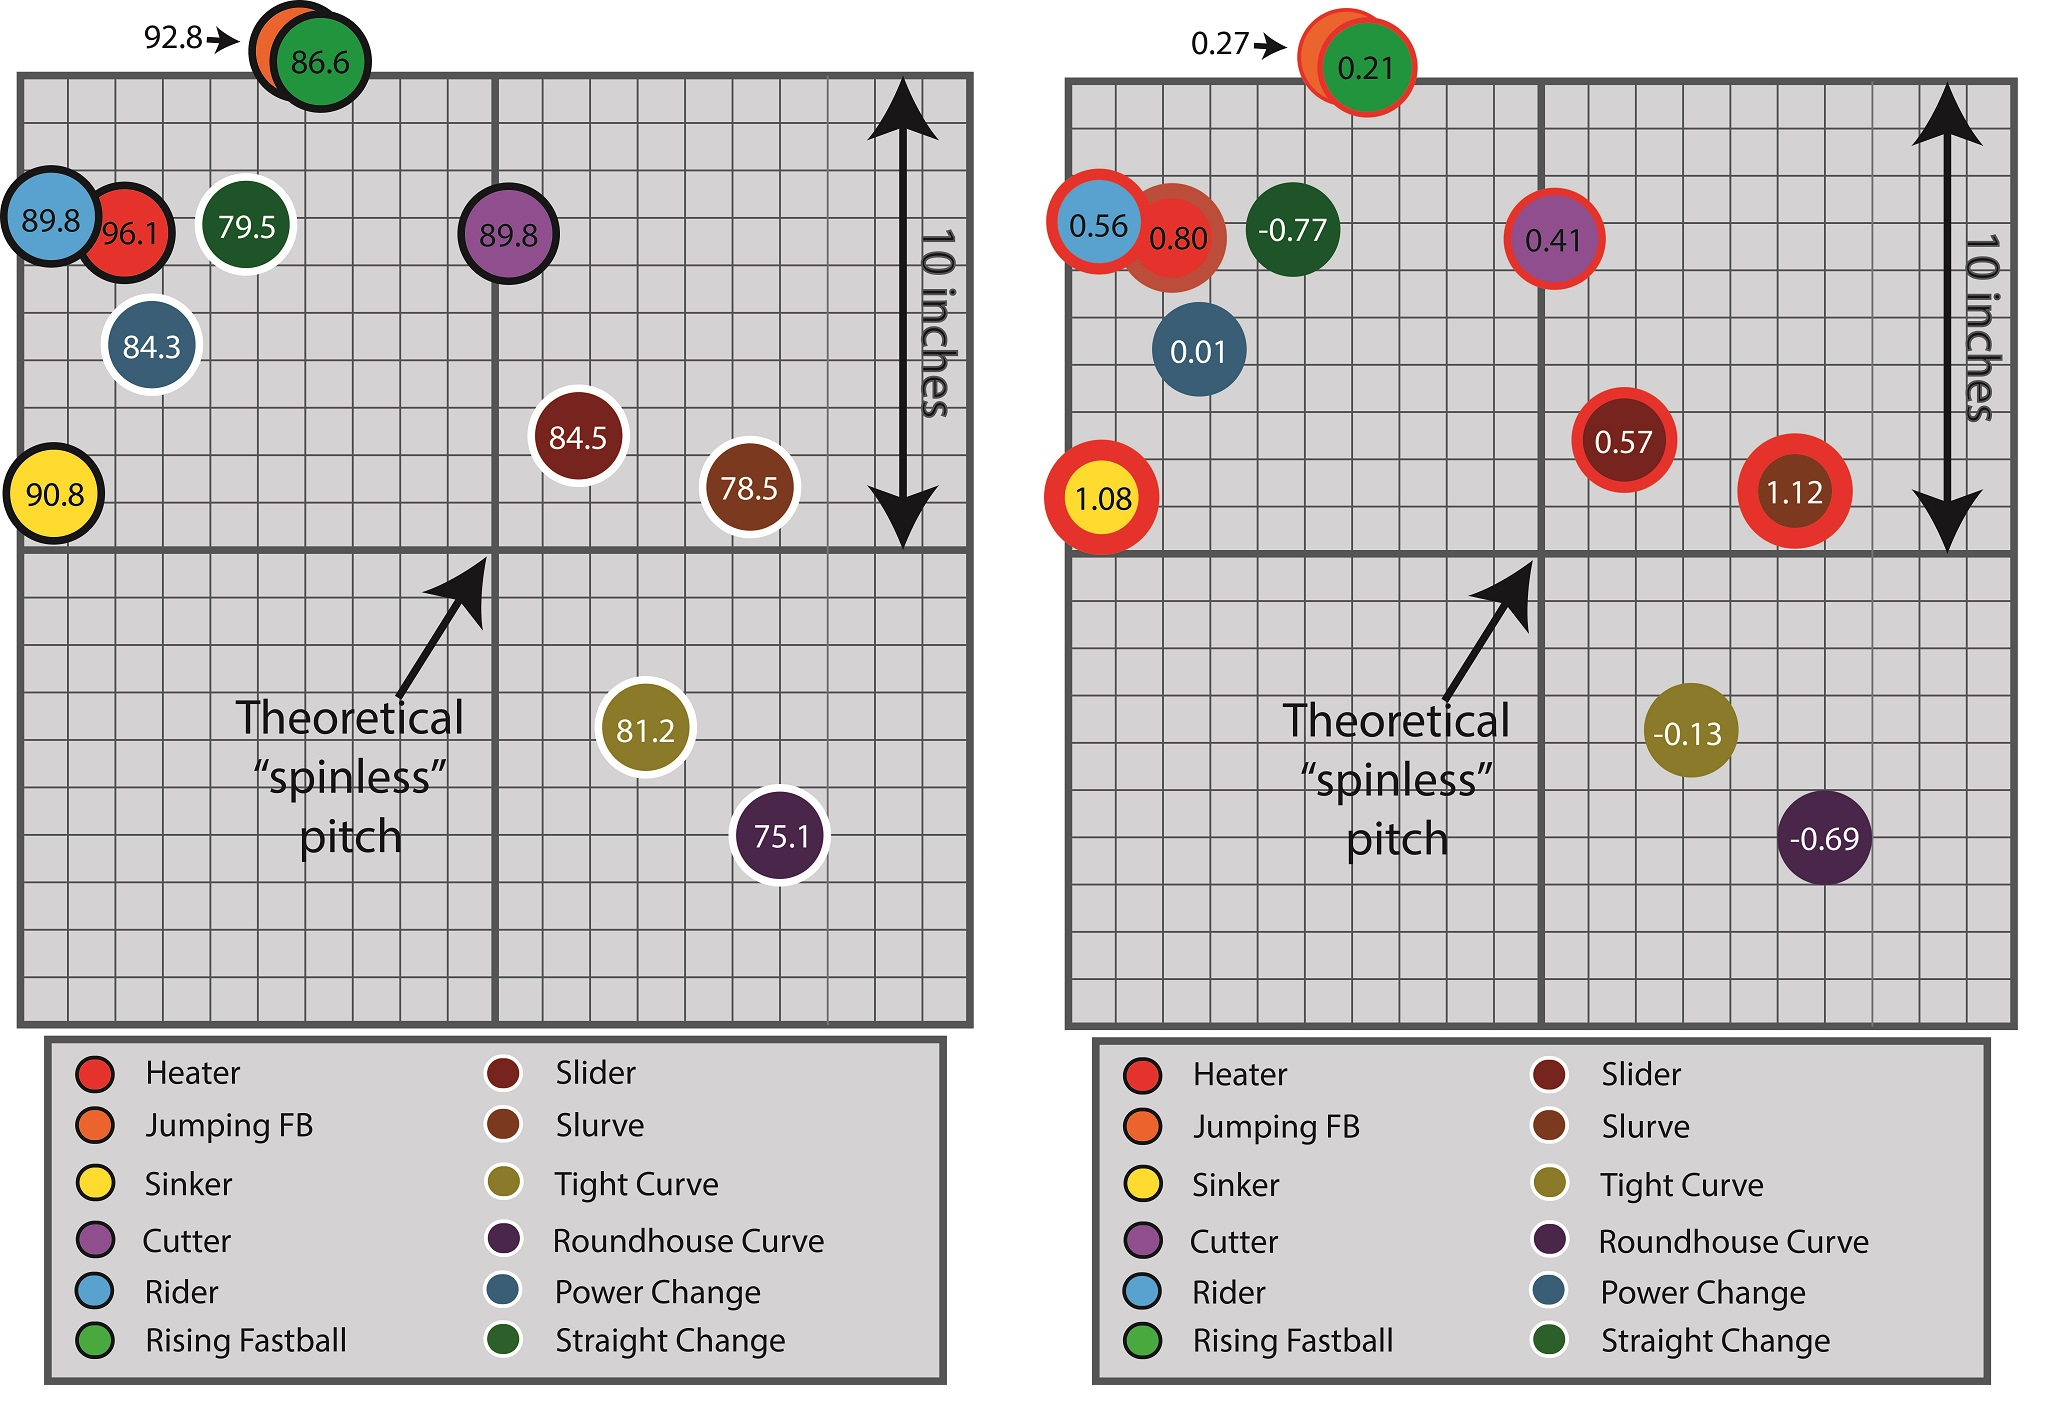 12 pitches, velocity and platoon